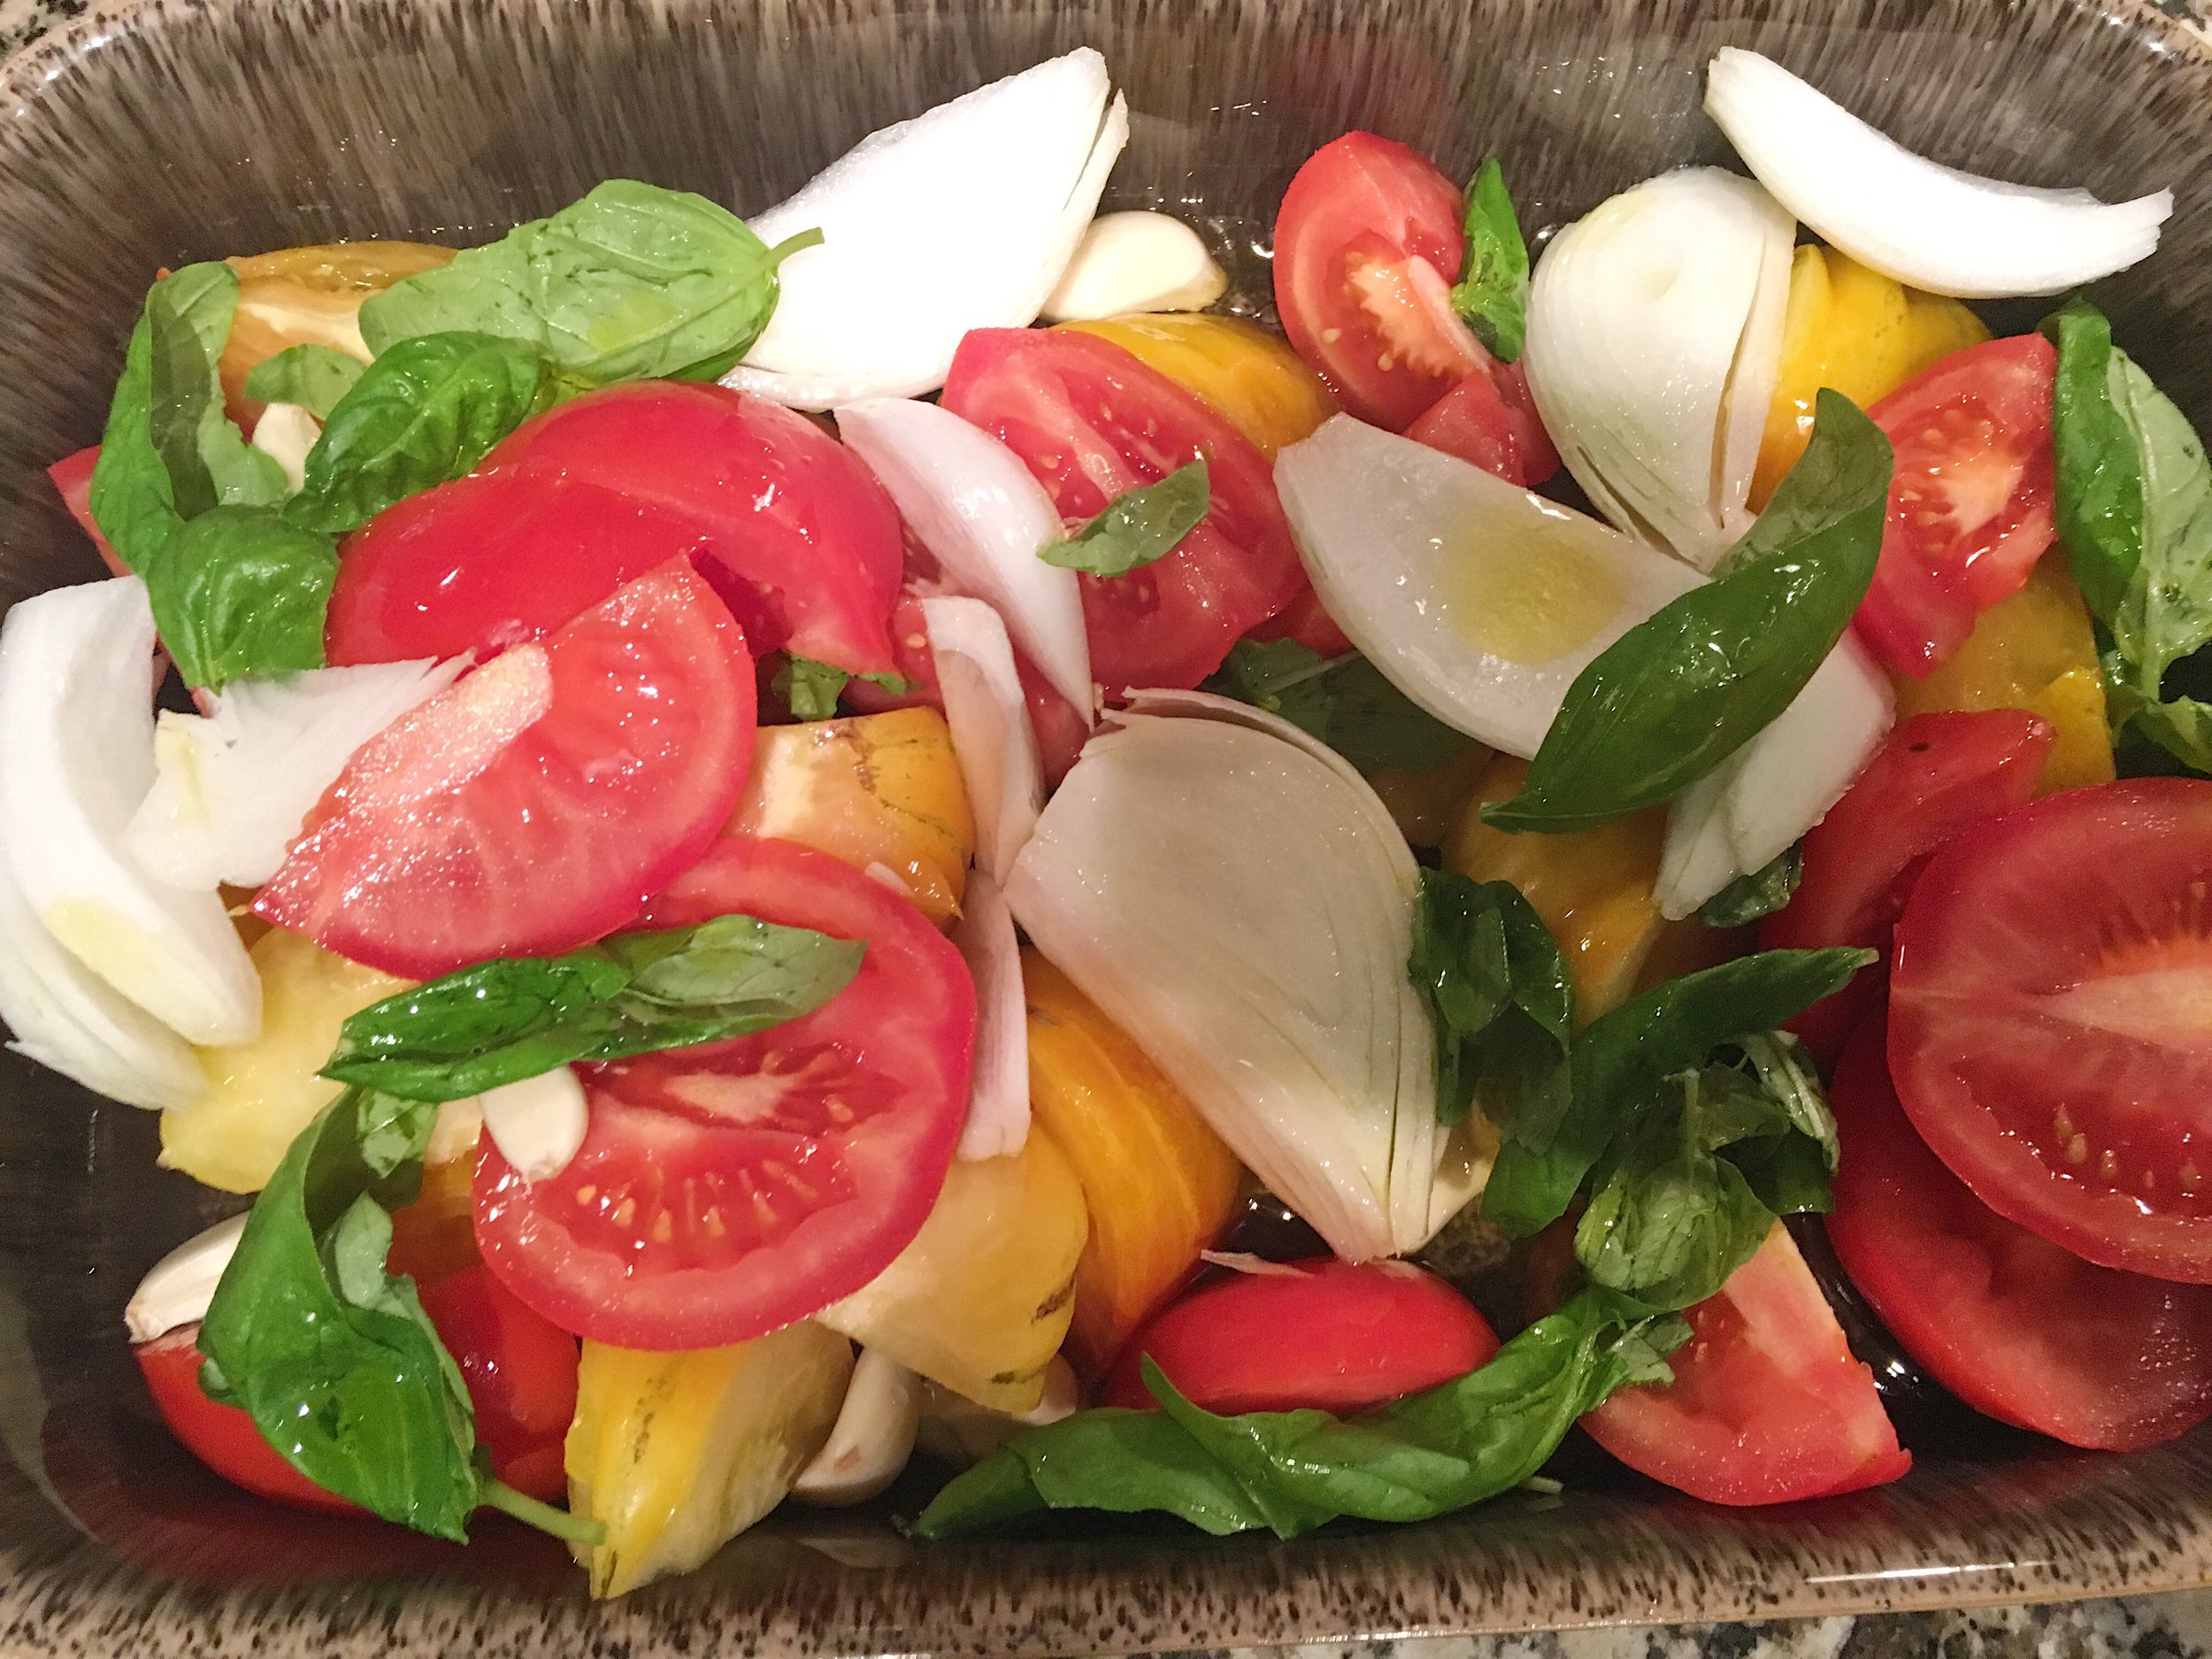 Heirloom Tomato and Basil Sauce Recipe -Prior to placing in the oven